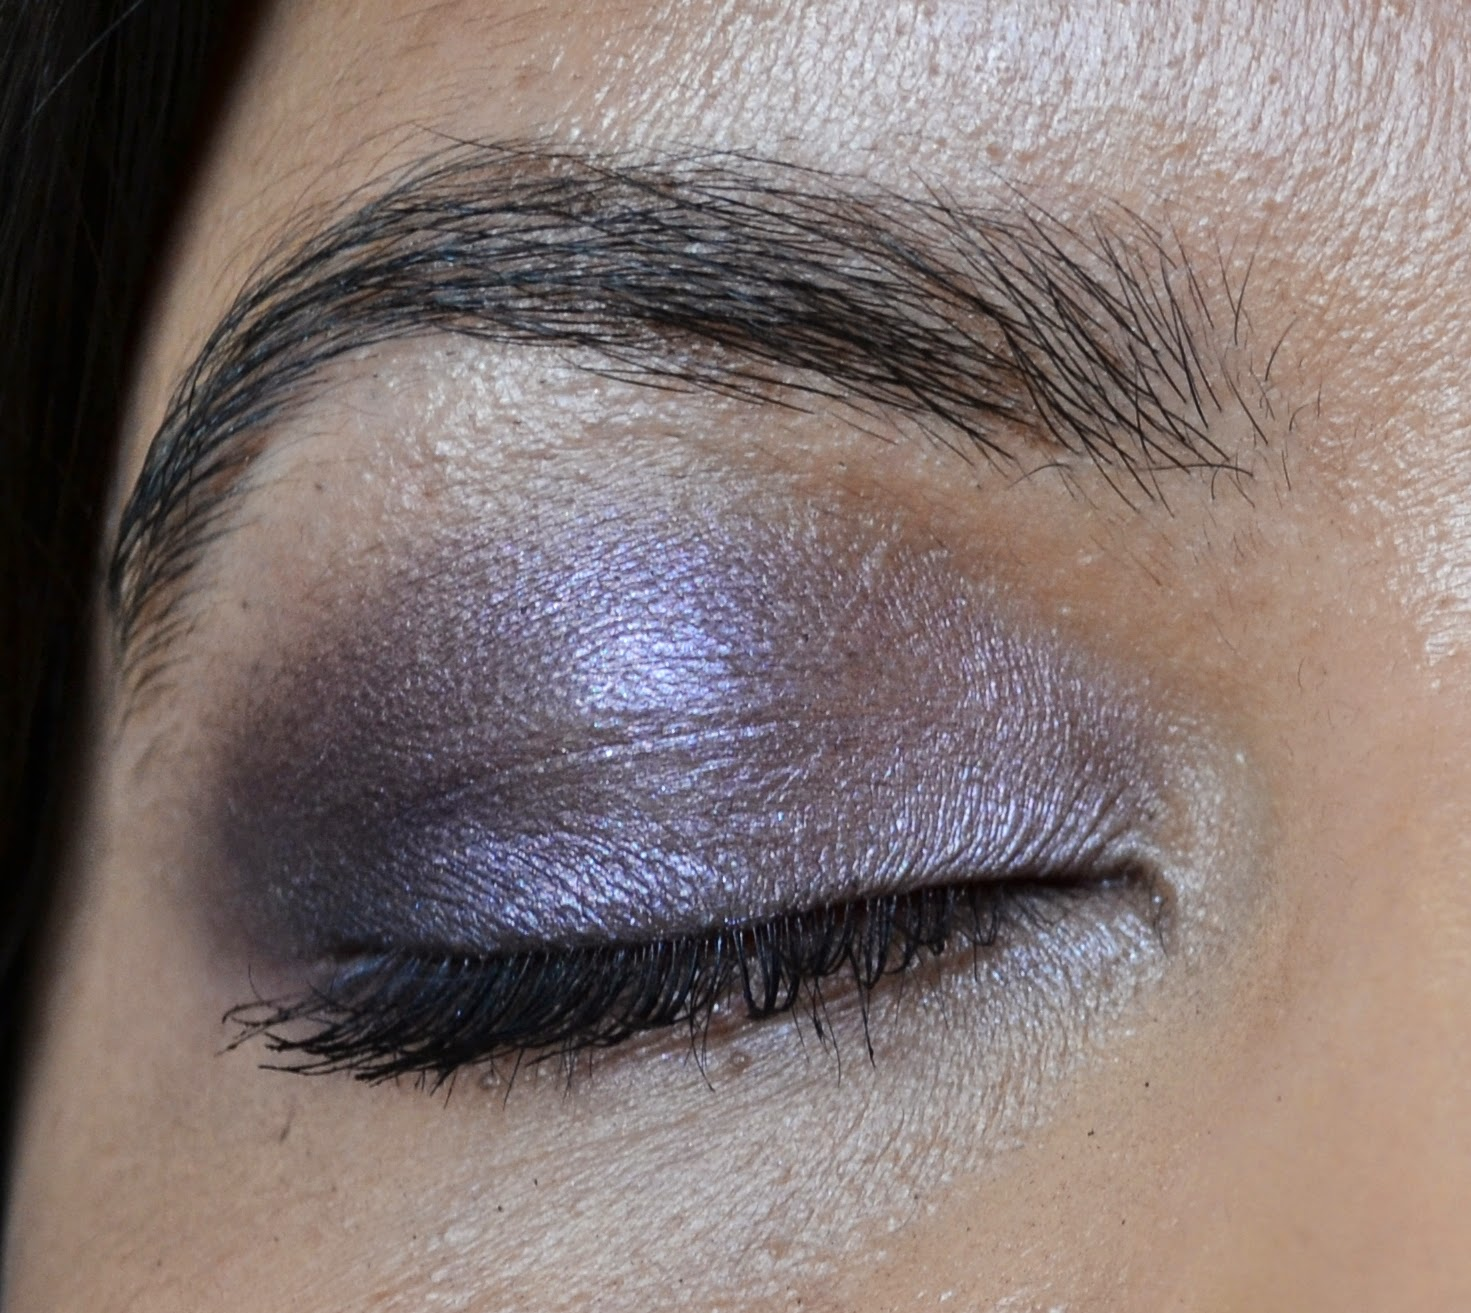 Estee Lauder Sculpting EyeShadow 5-Colour Palette in Envious Orchid Swatch - Aspiring Londoner